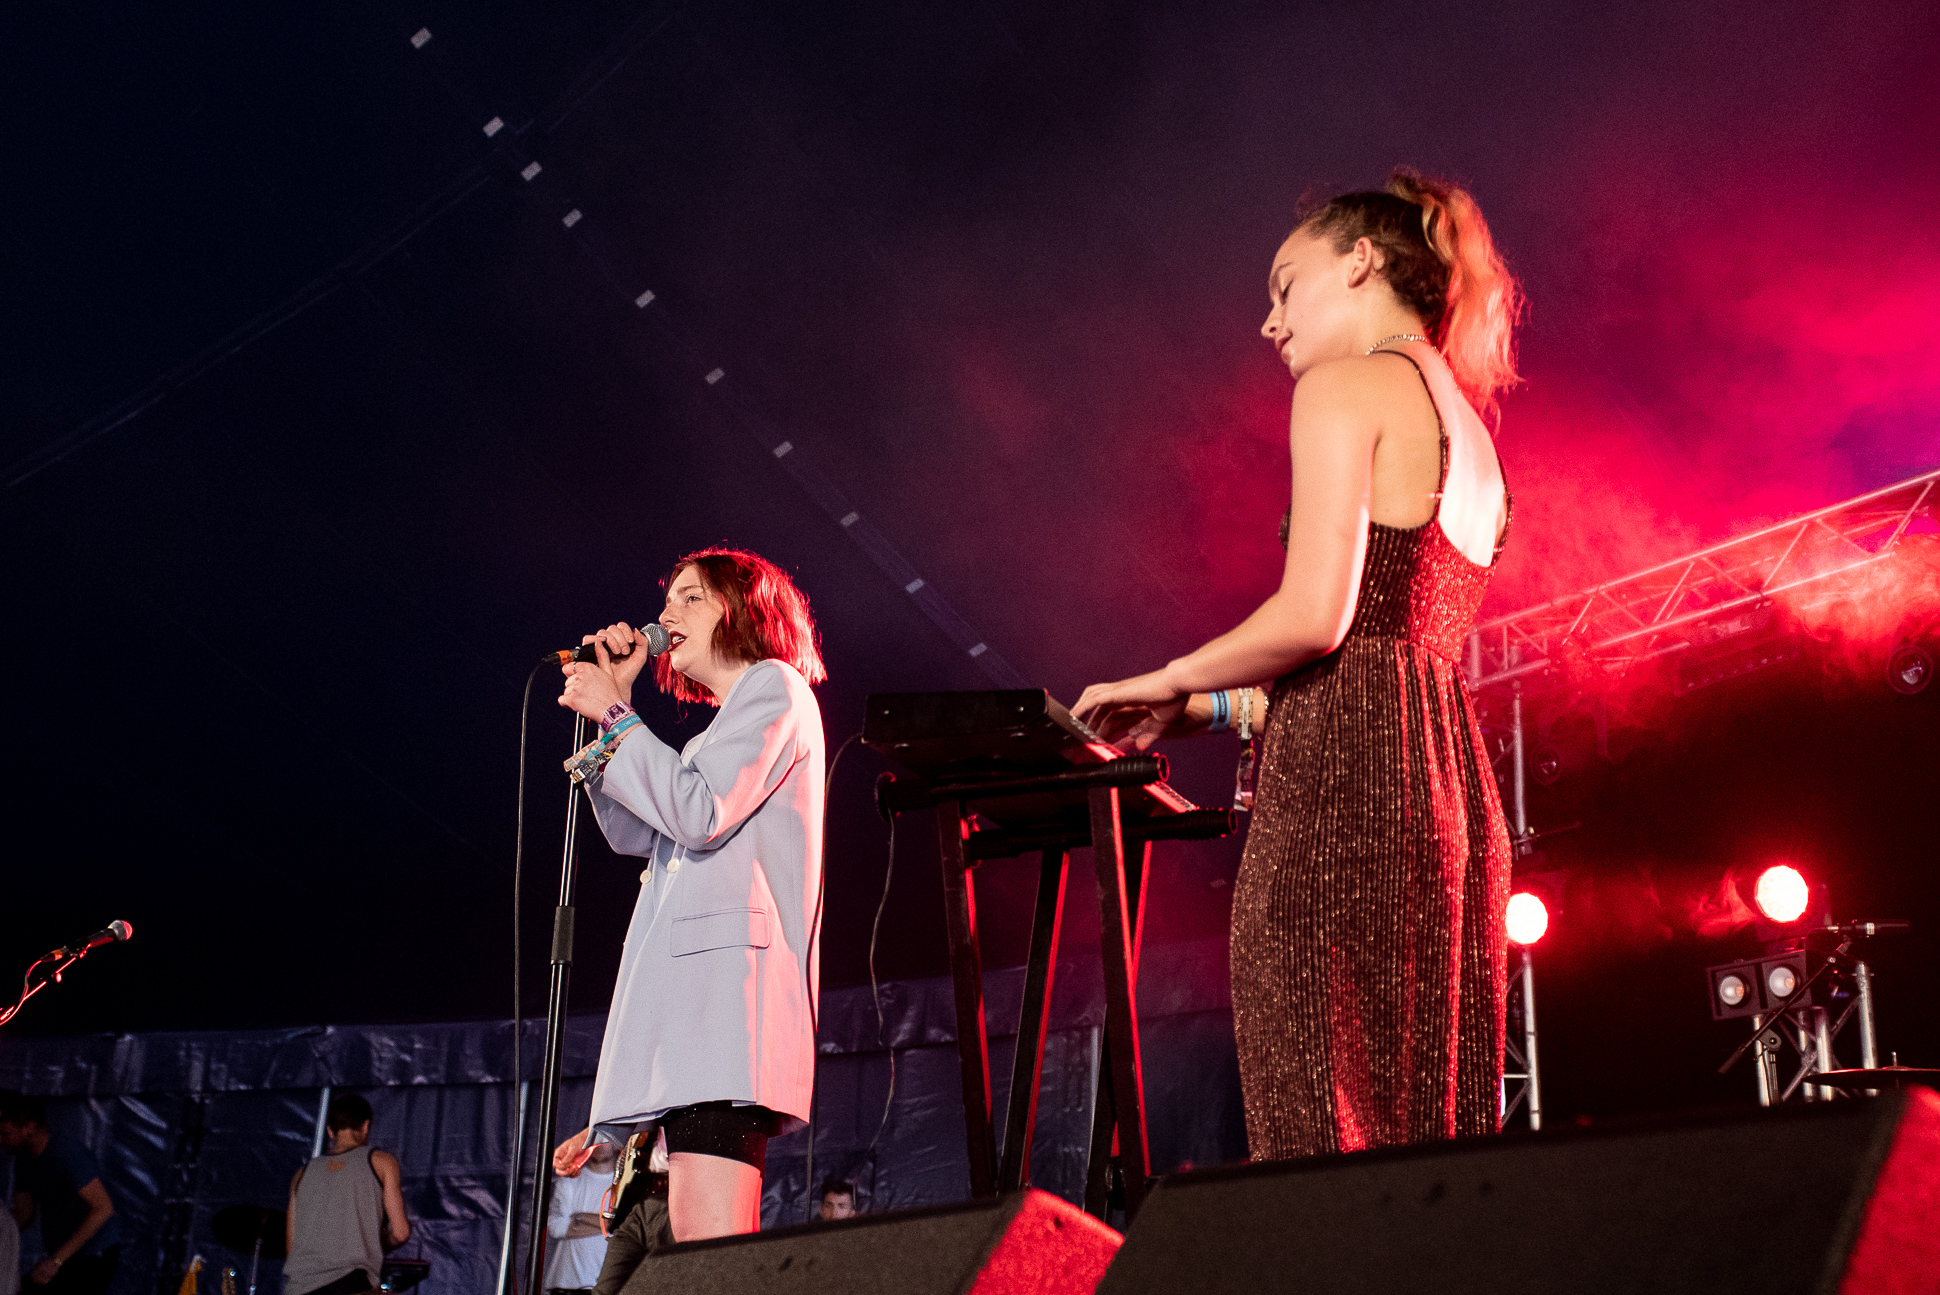 Kendal Calling - Sophie and the Giants - Sunday-8.jpg